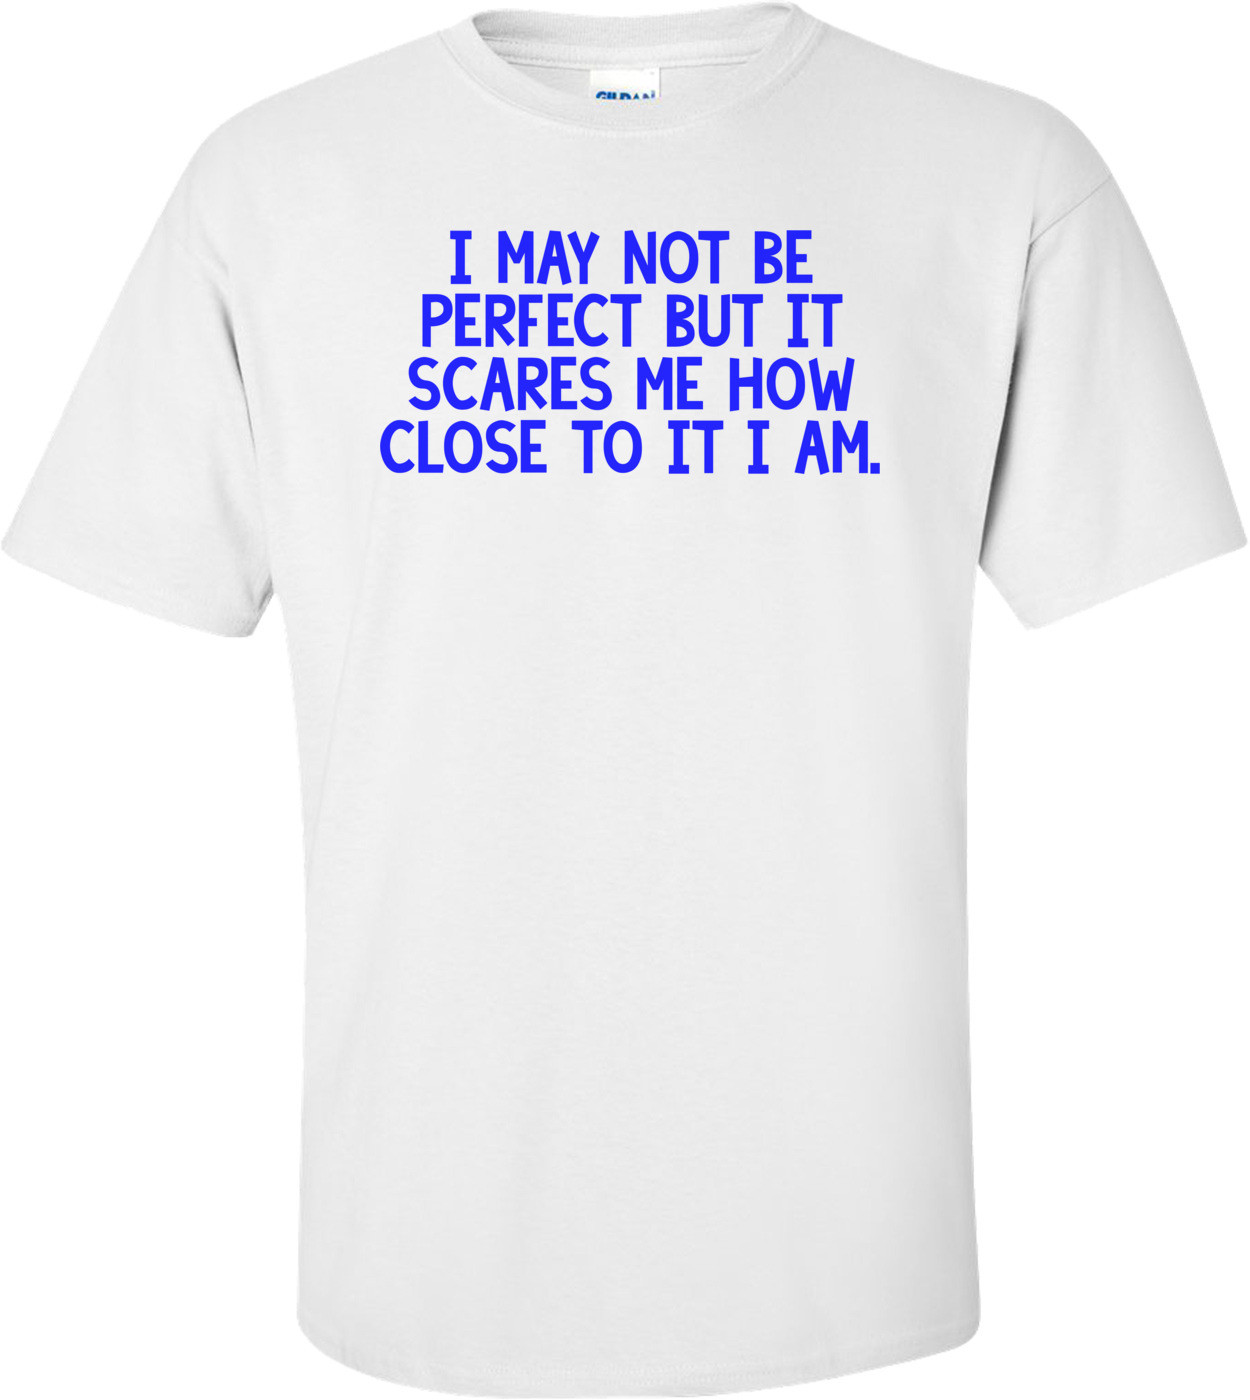 I may not be perfect but it scares me how close to it I am. Shirt